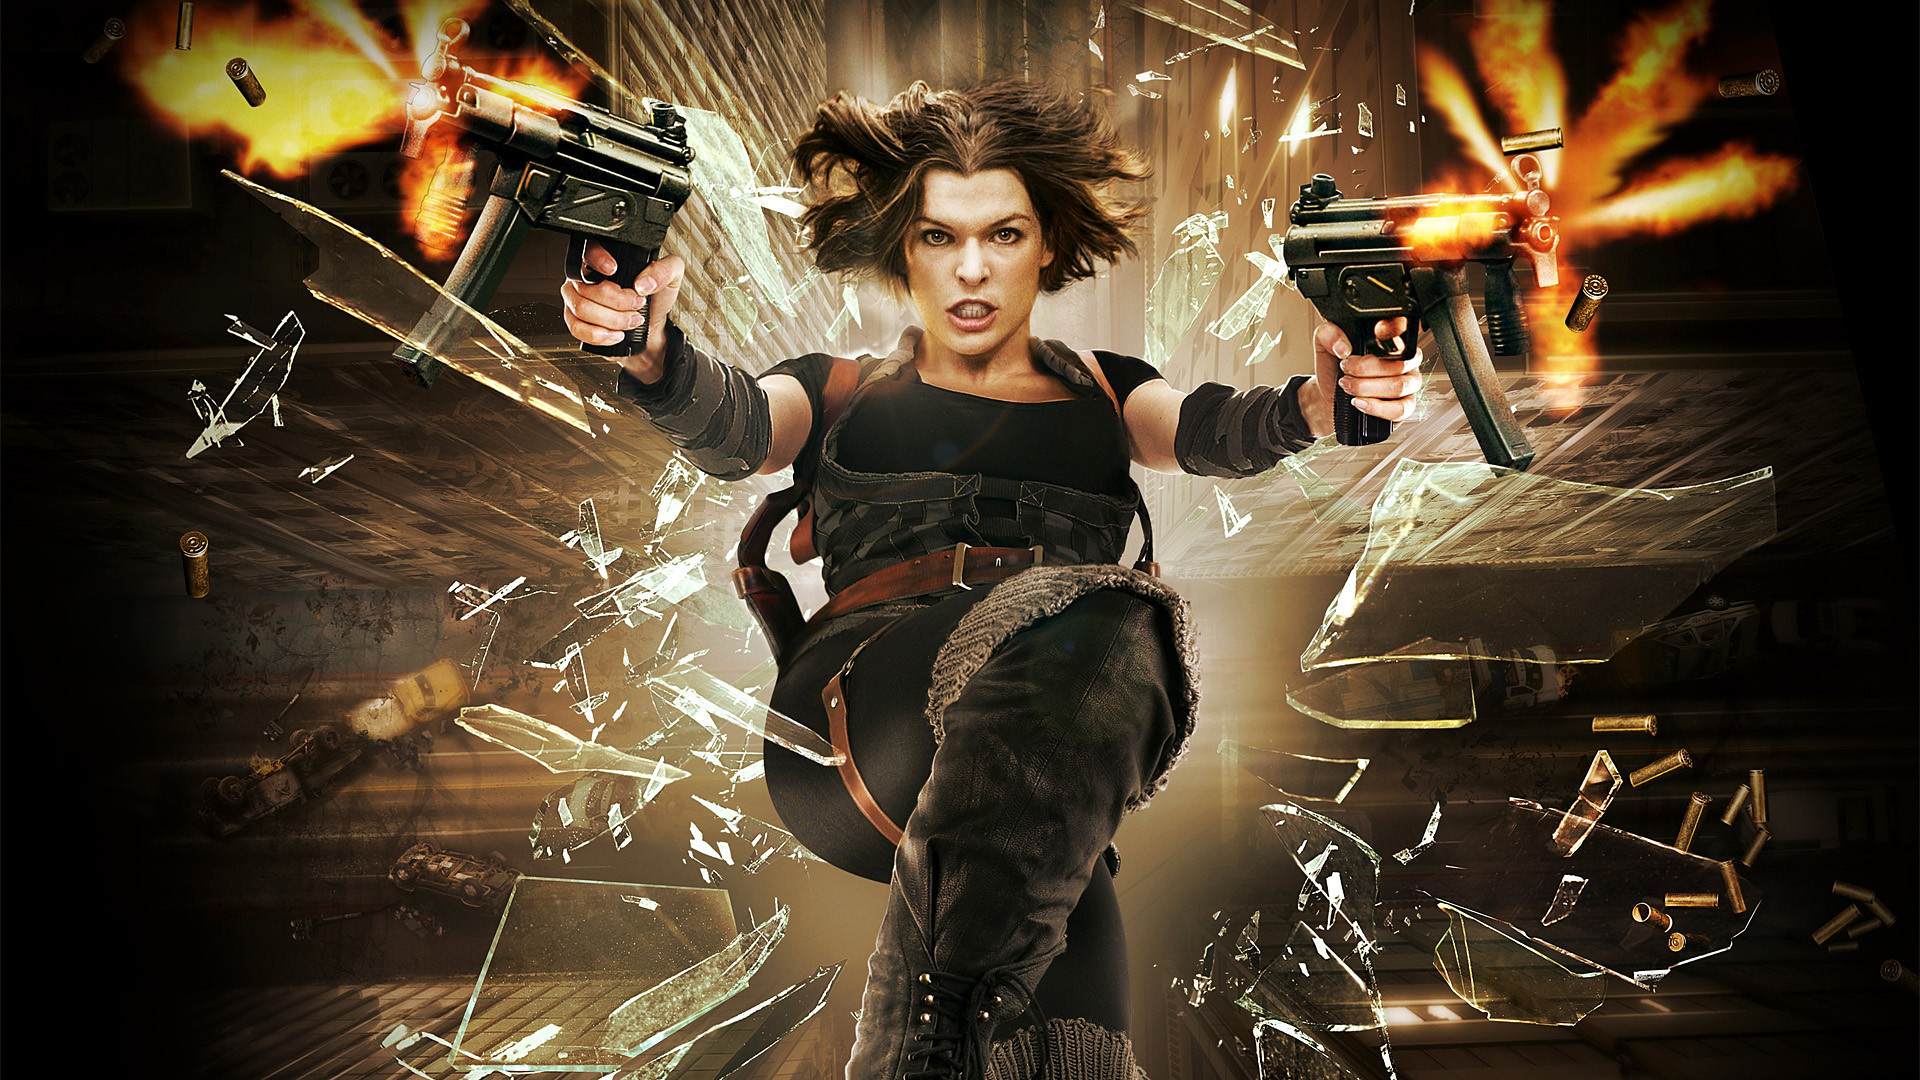 Resident Evil Afterlife 211.37 Kb